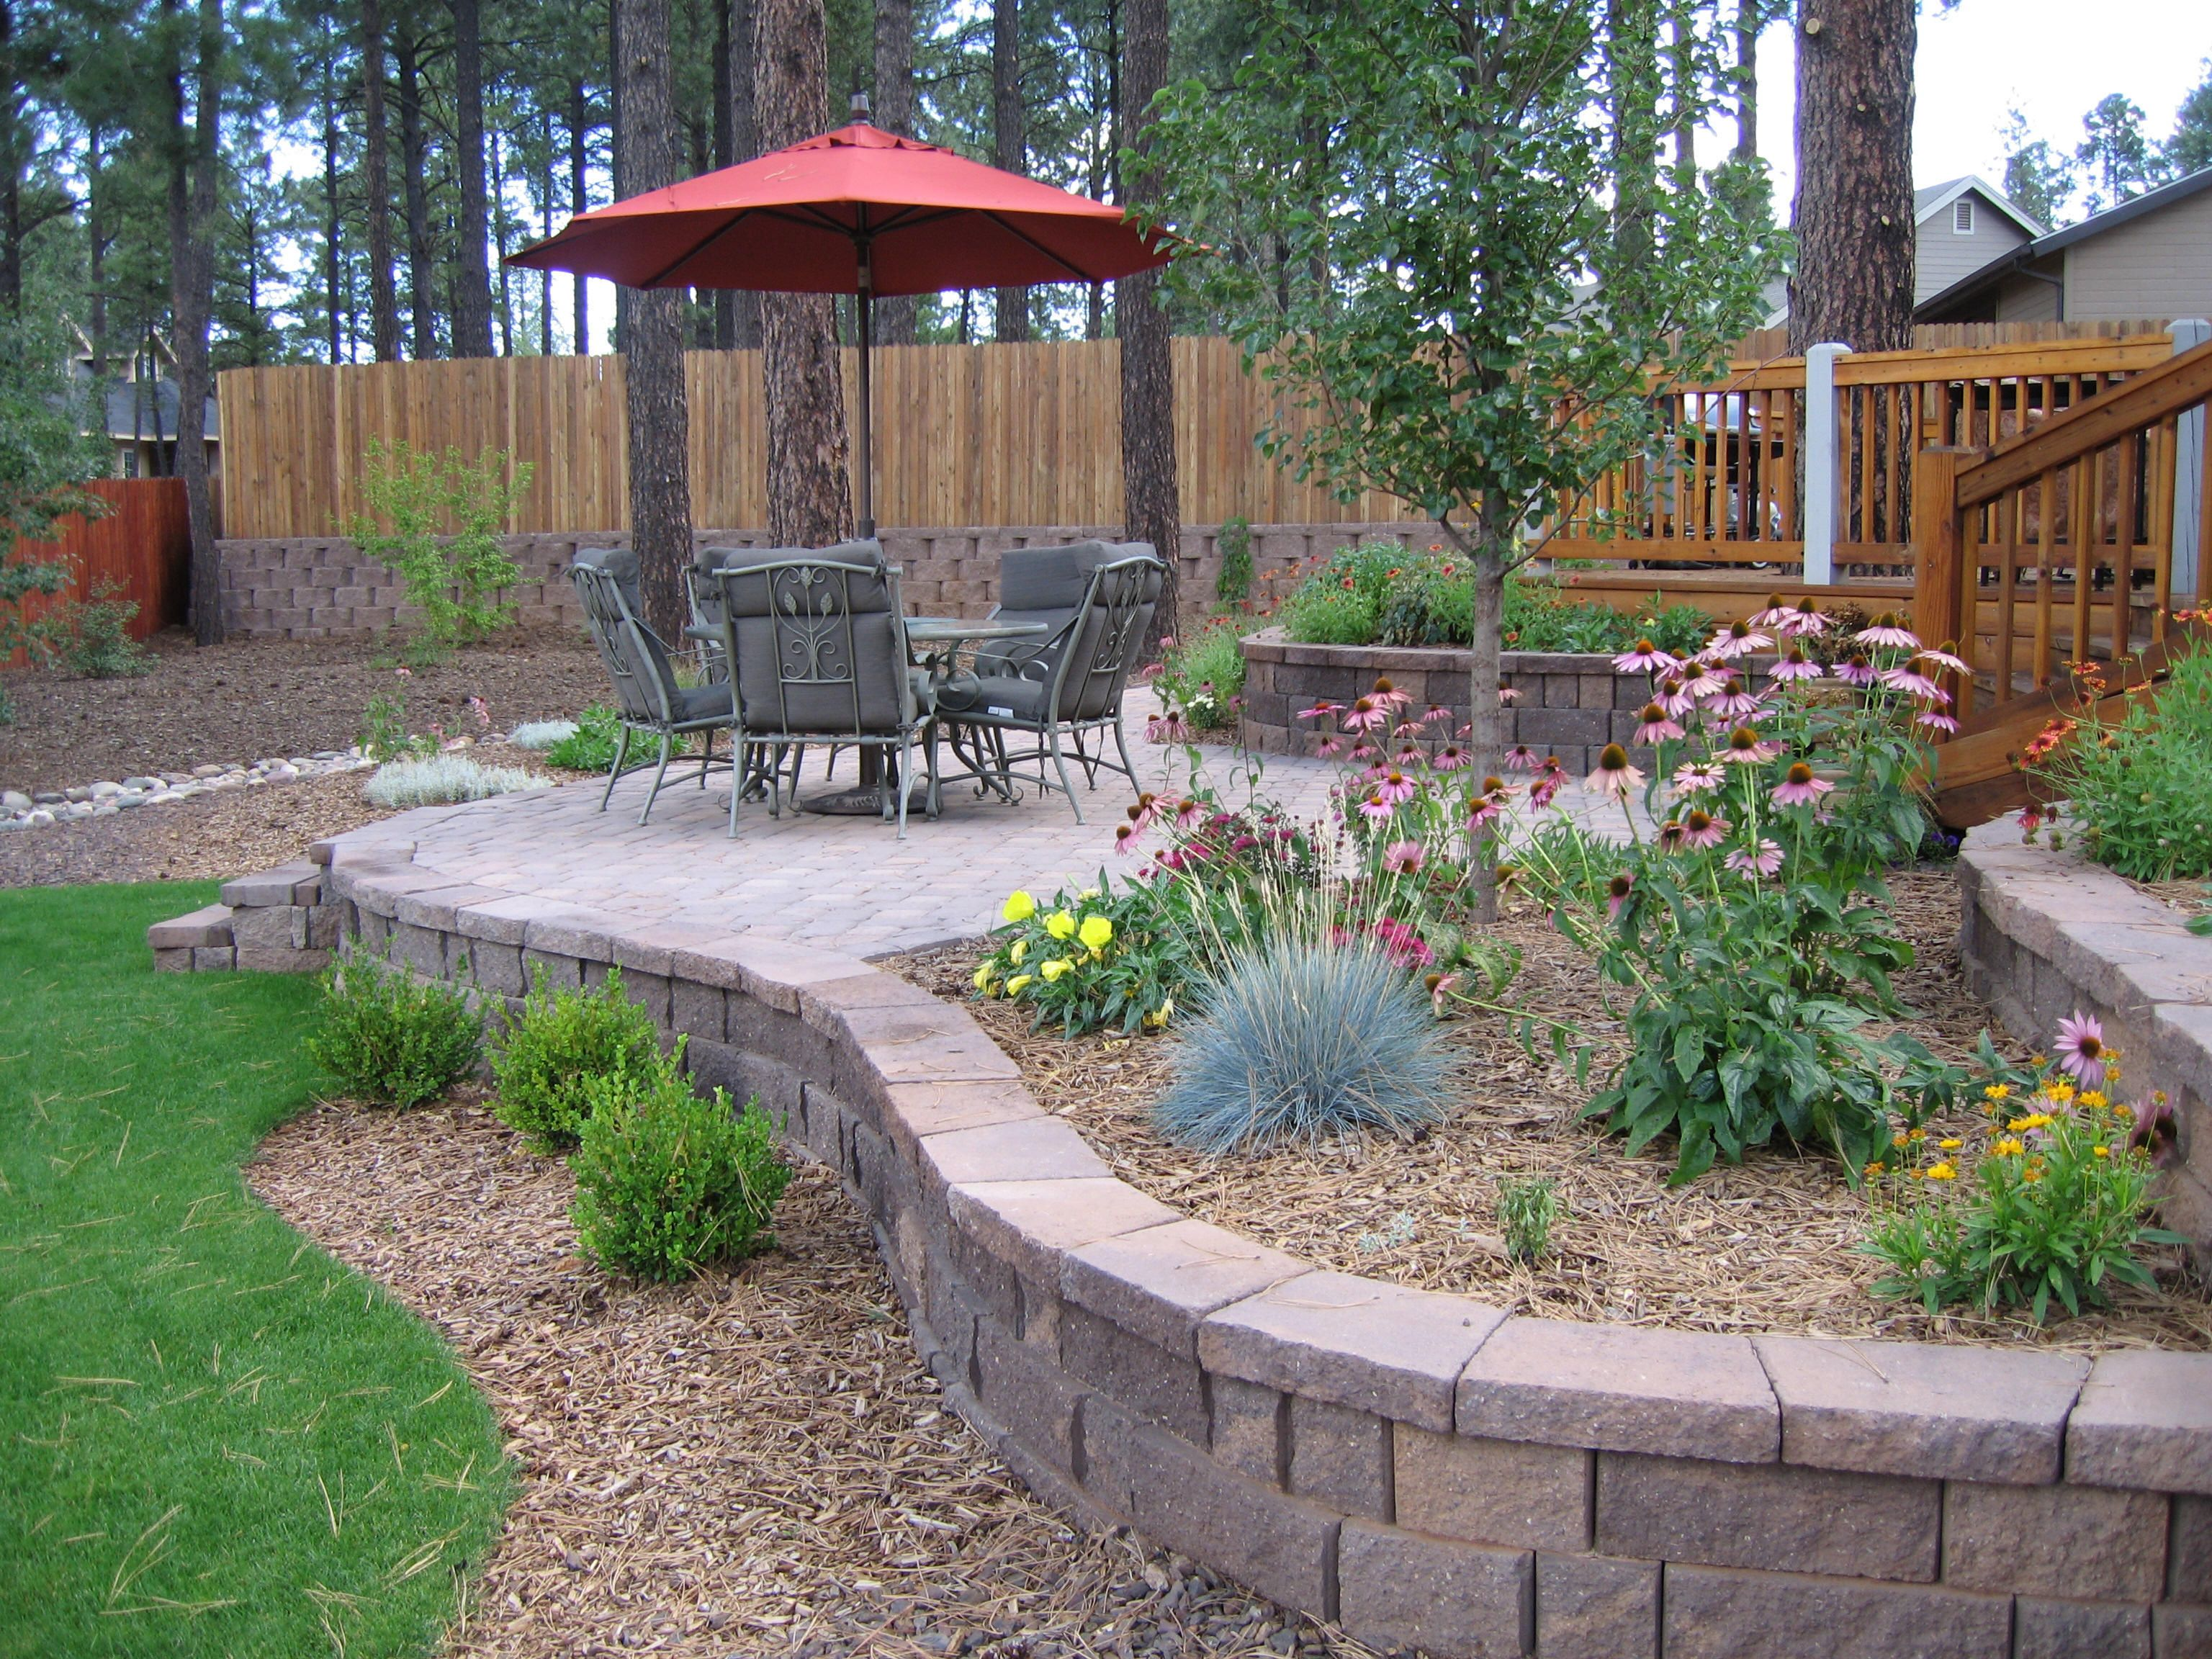 gardening landscaping nice backyard landscape ideas best backyard landscape ideas landscaping backyard ideas kid friendly backyard landscaping ideas - Backyard Landscaping Design Ideas